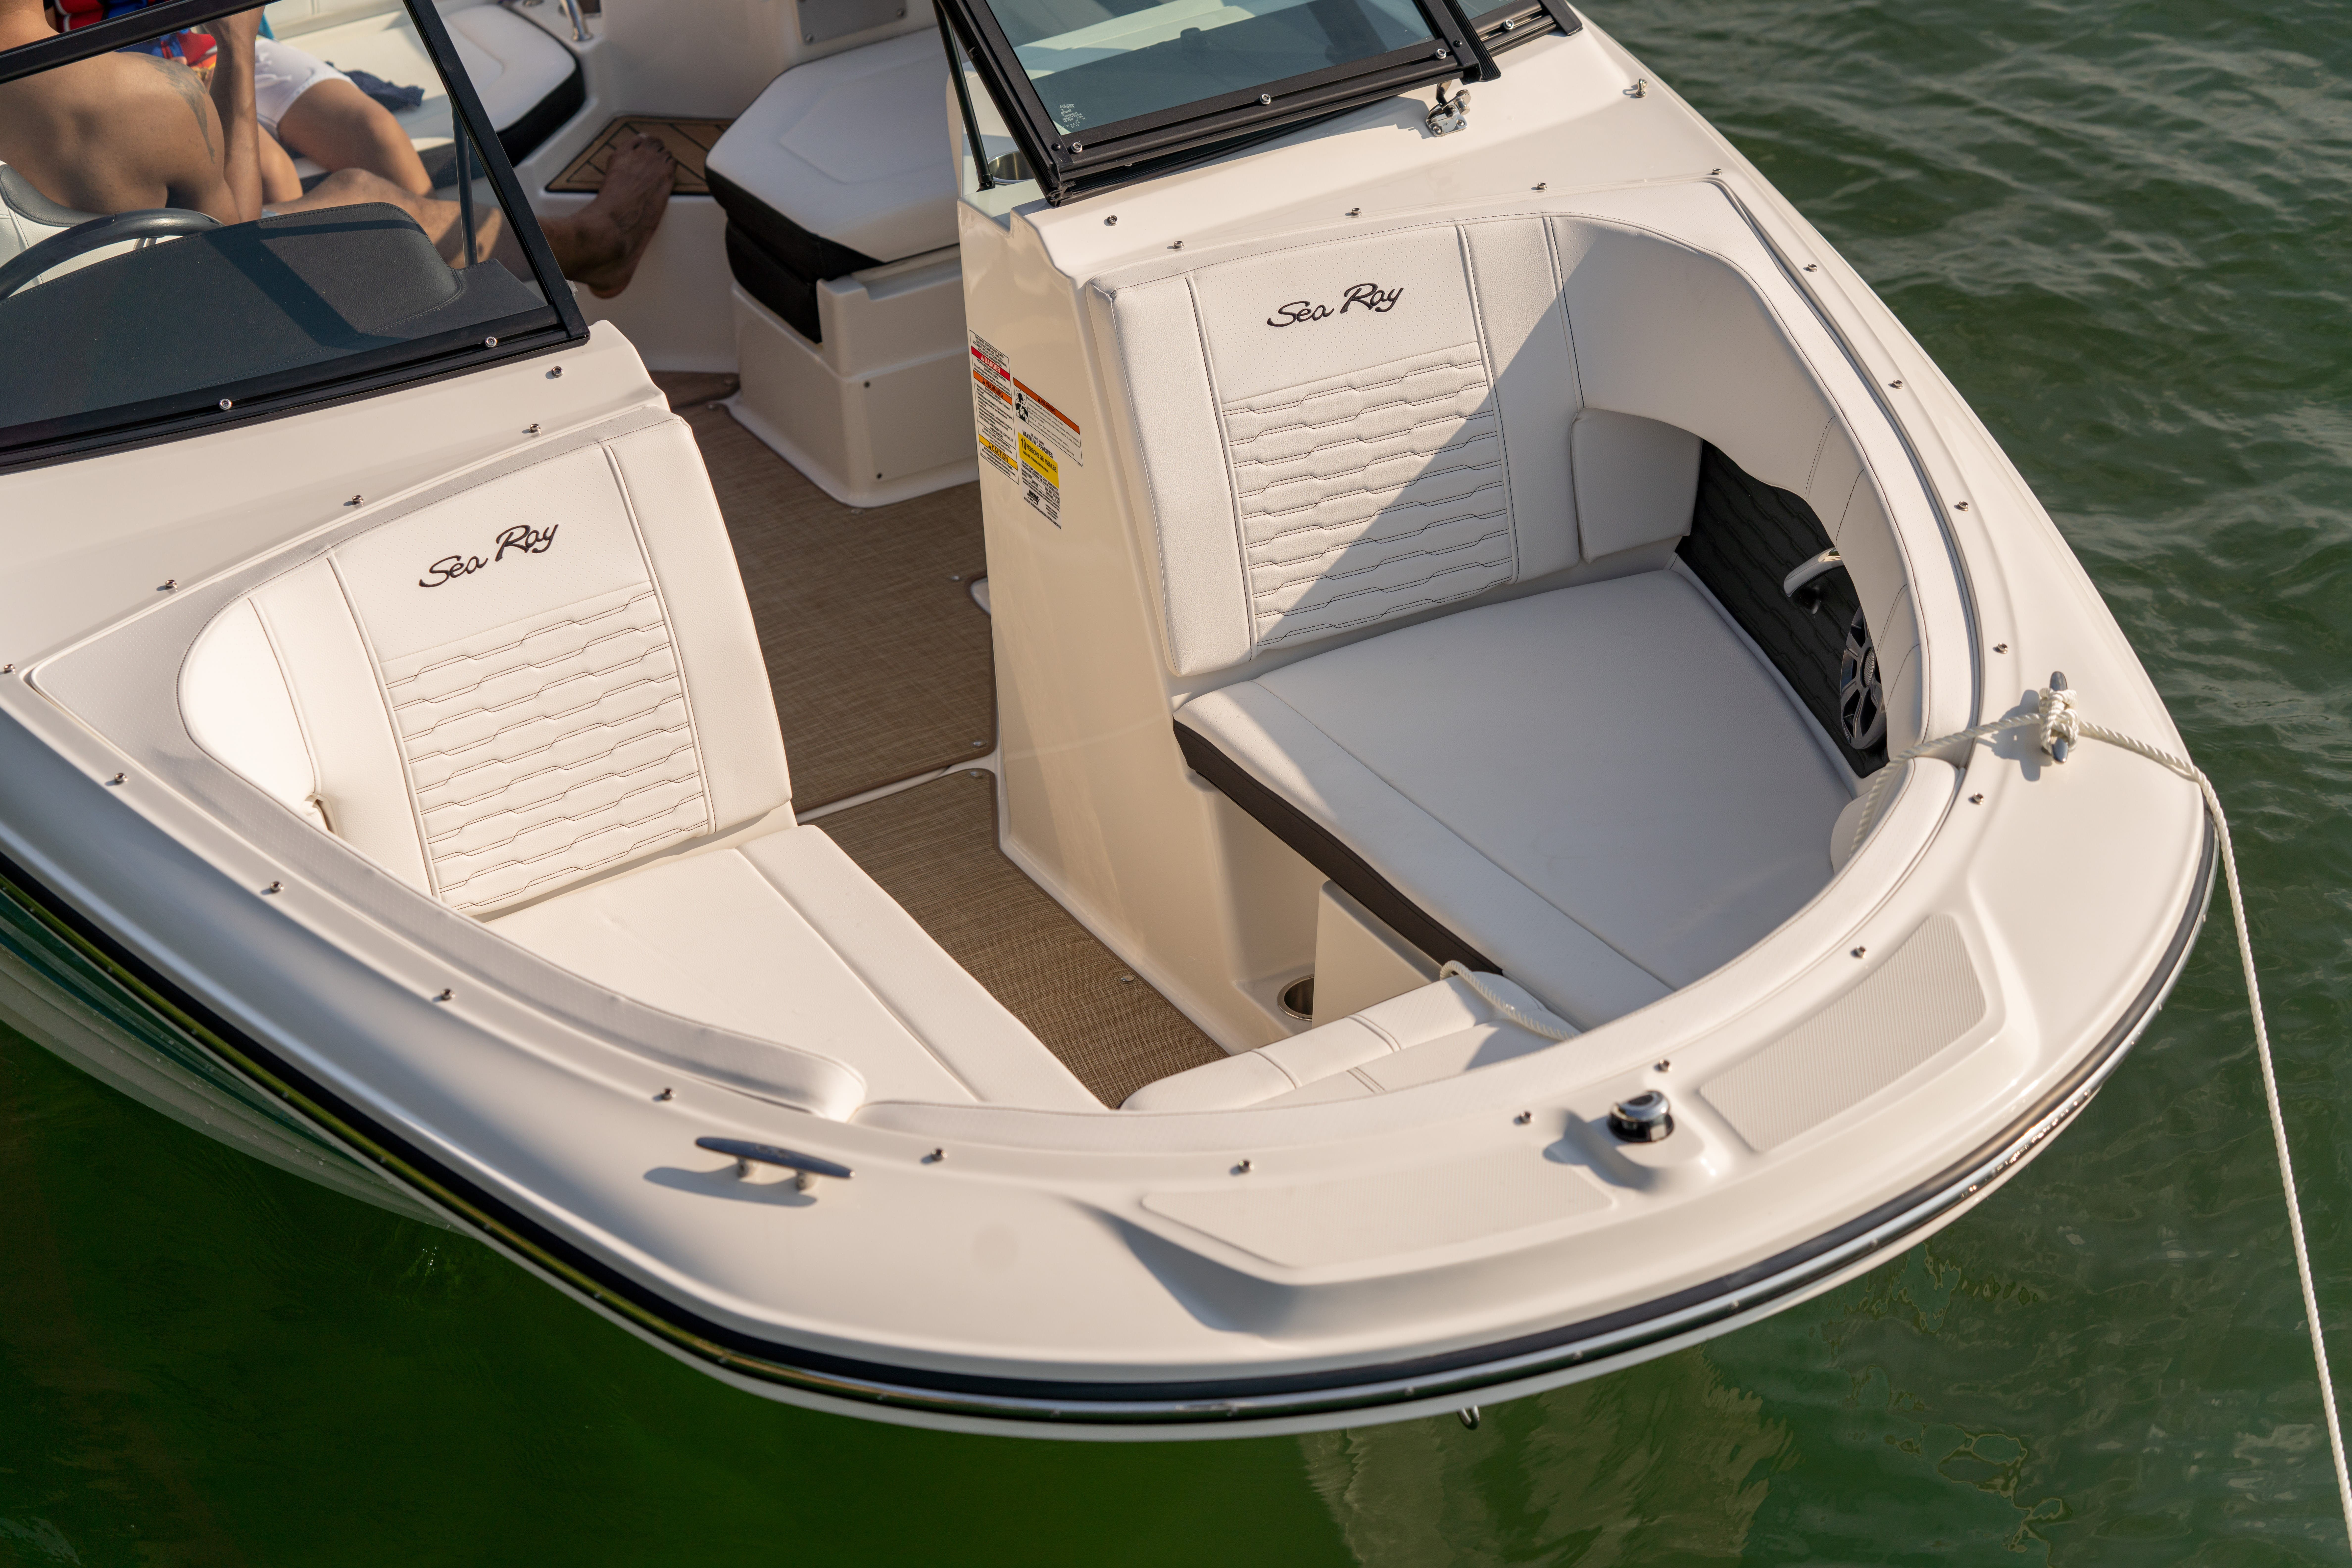 2021 Sea Ray boat for sale, model of the boat is 190 SPX & Image # 4 of 11